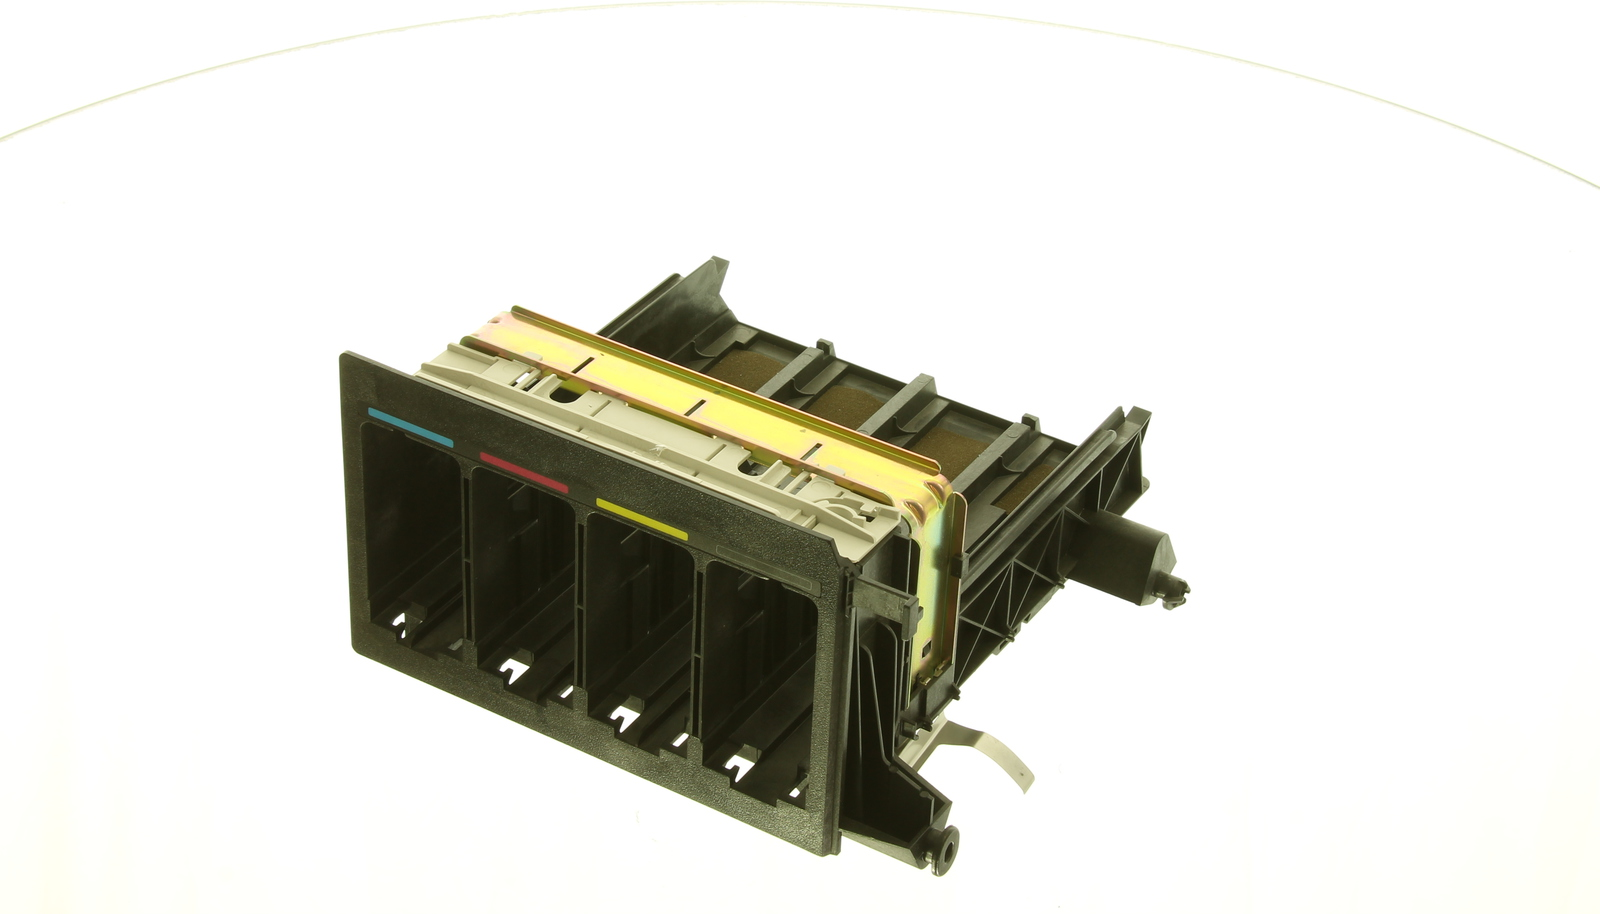 HP C6074-60386 Ink Supply Station for HP DesignJet 1050 1055